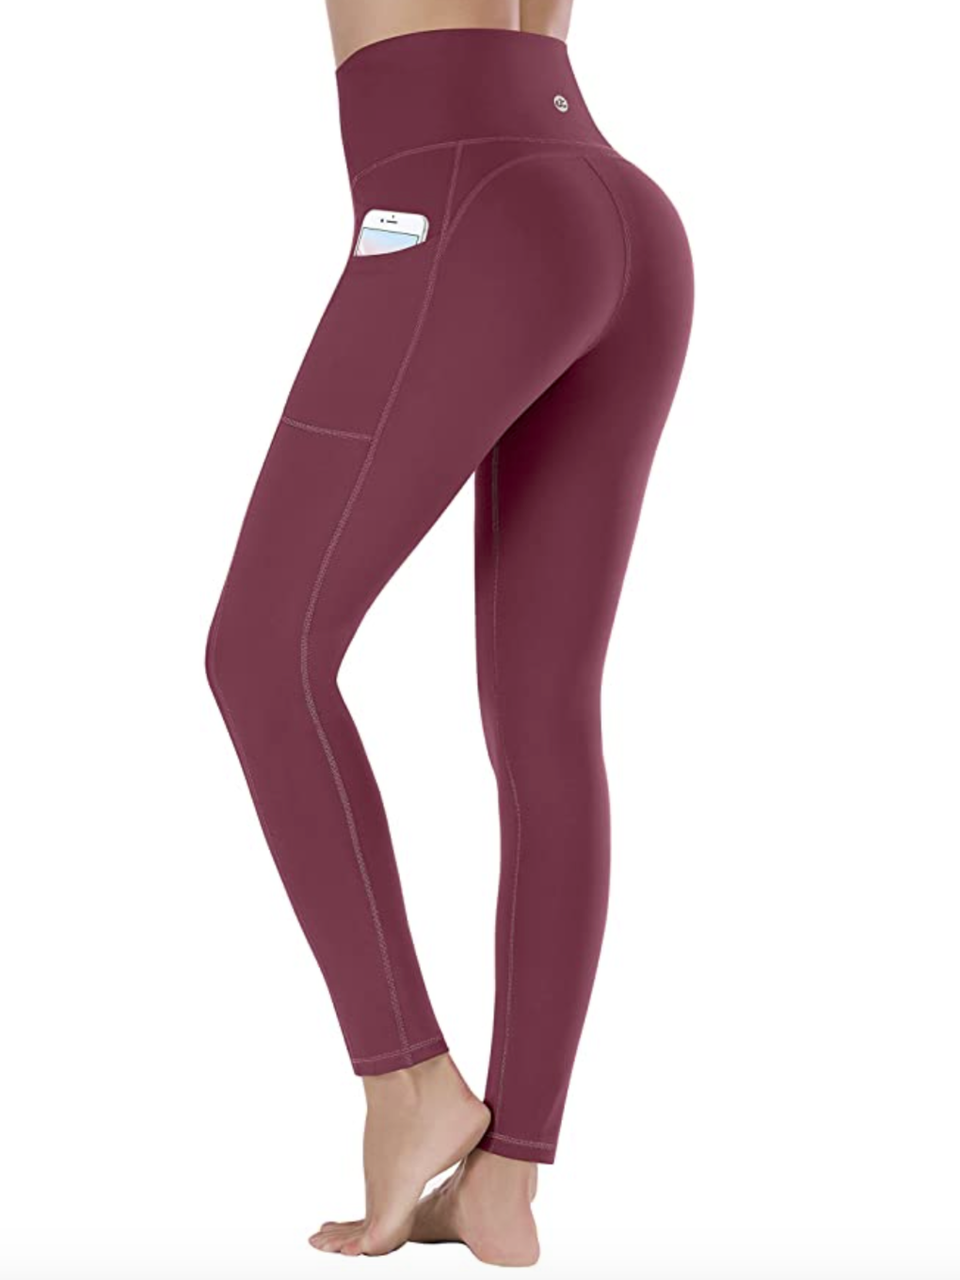 The Best Summer Leggings From Amazon That Won't Make You Sweat